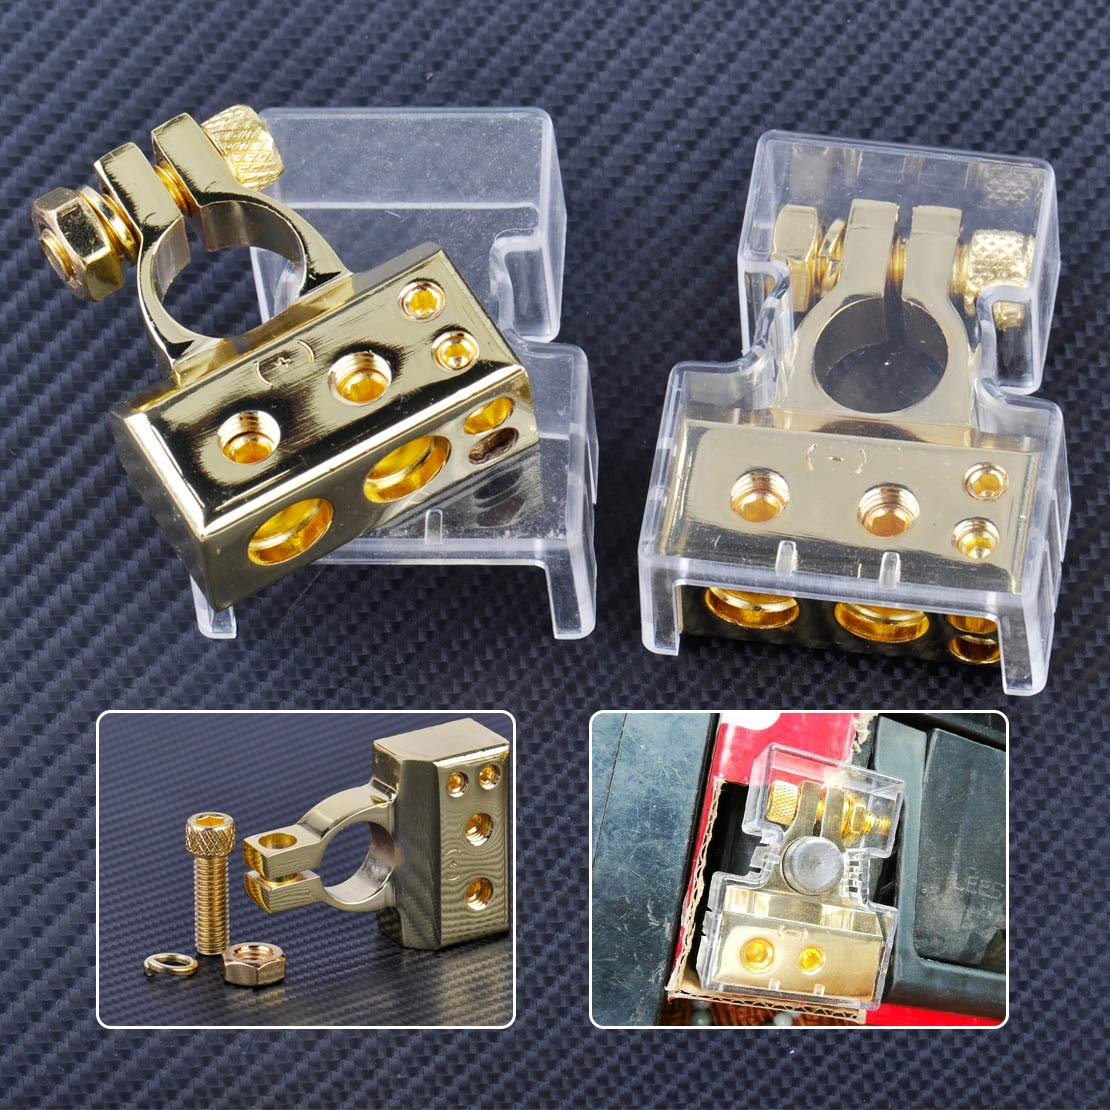 2pcs Gold zinc alloy 2 4 8 Gauge AWG 12V Positive & Negative Car Battery Terminal Clamp Connector with Cover by HUYNH TRUNG LIEM